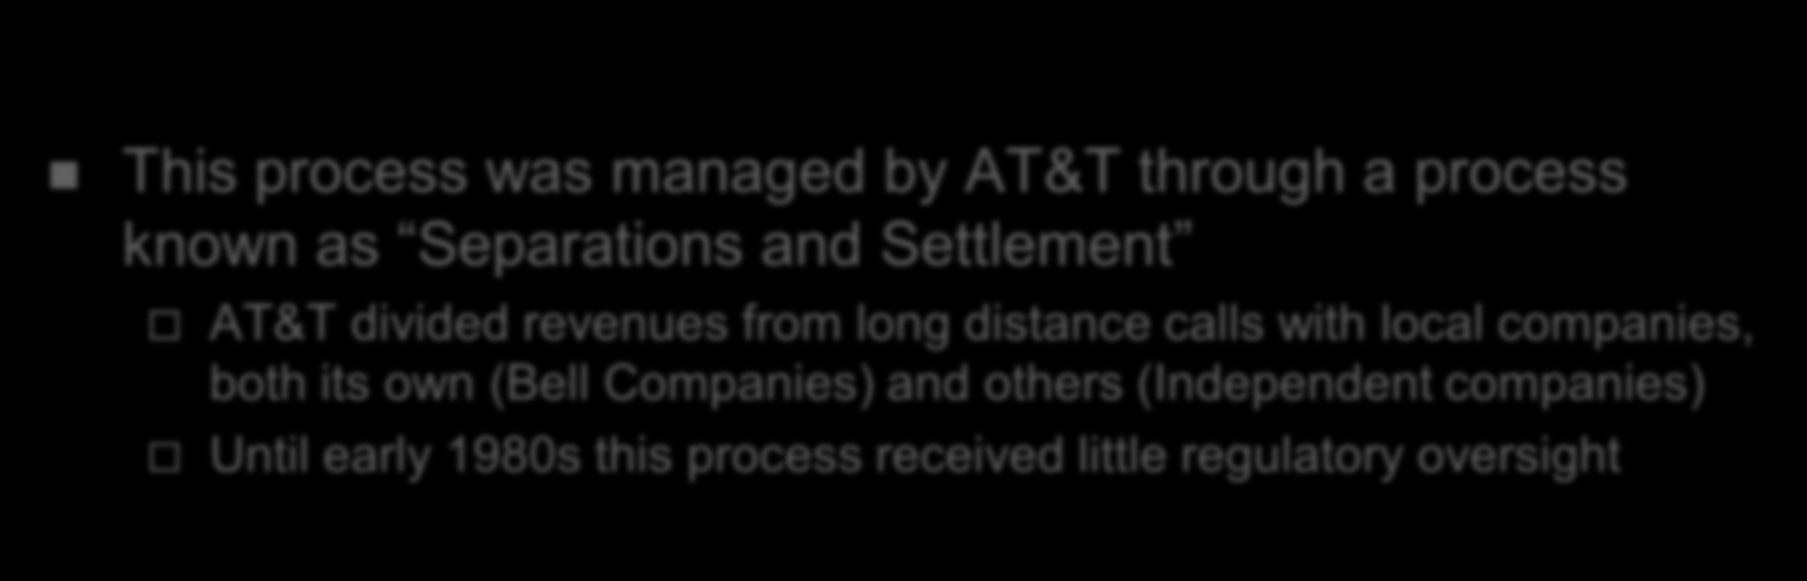 History of Universal Service in the USA This process was managed by AT&T through a process known as Separations and Settlement AT&T divided revenues from long